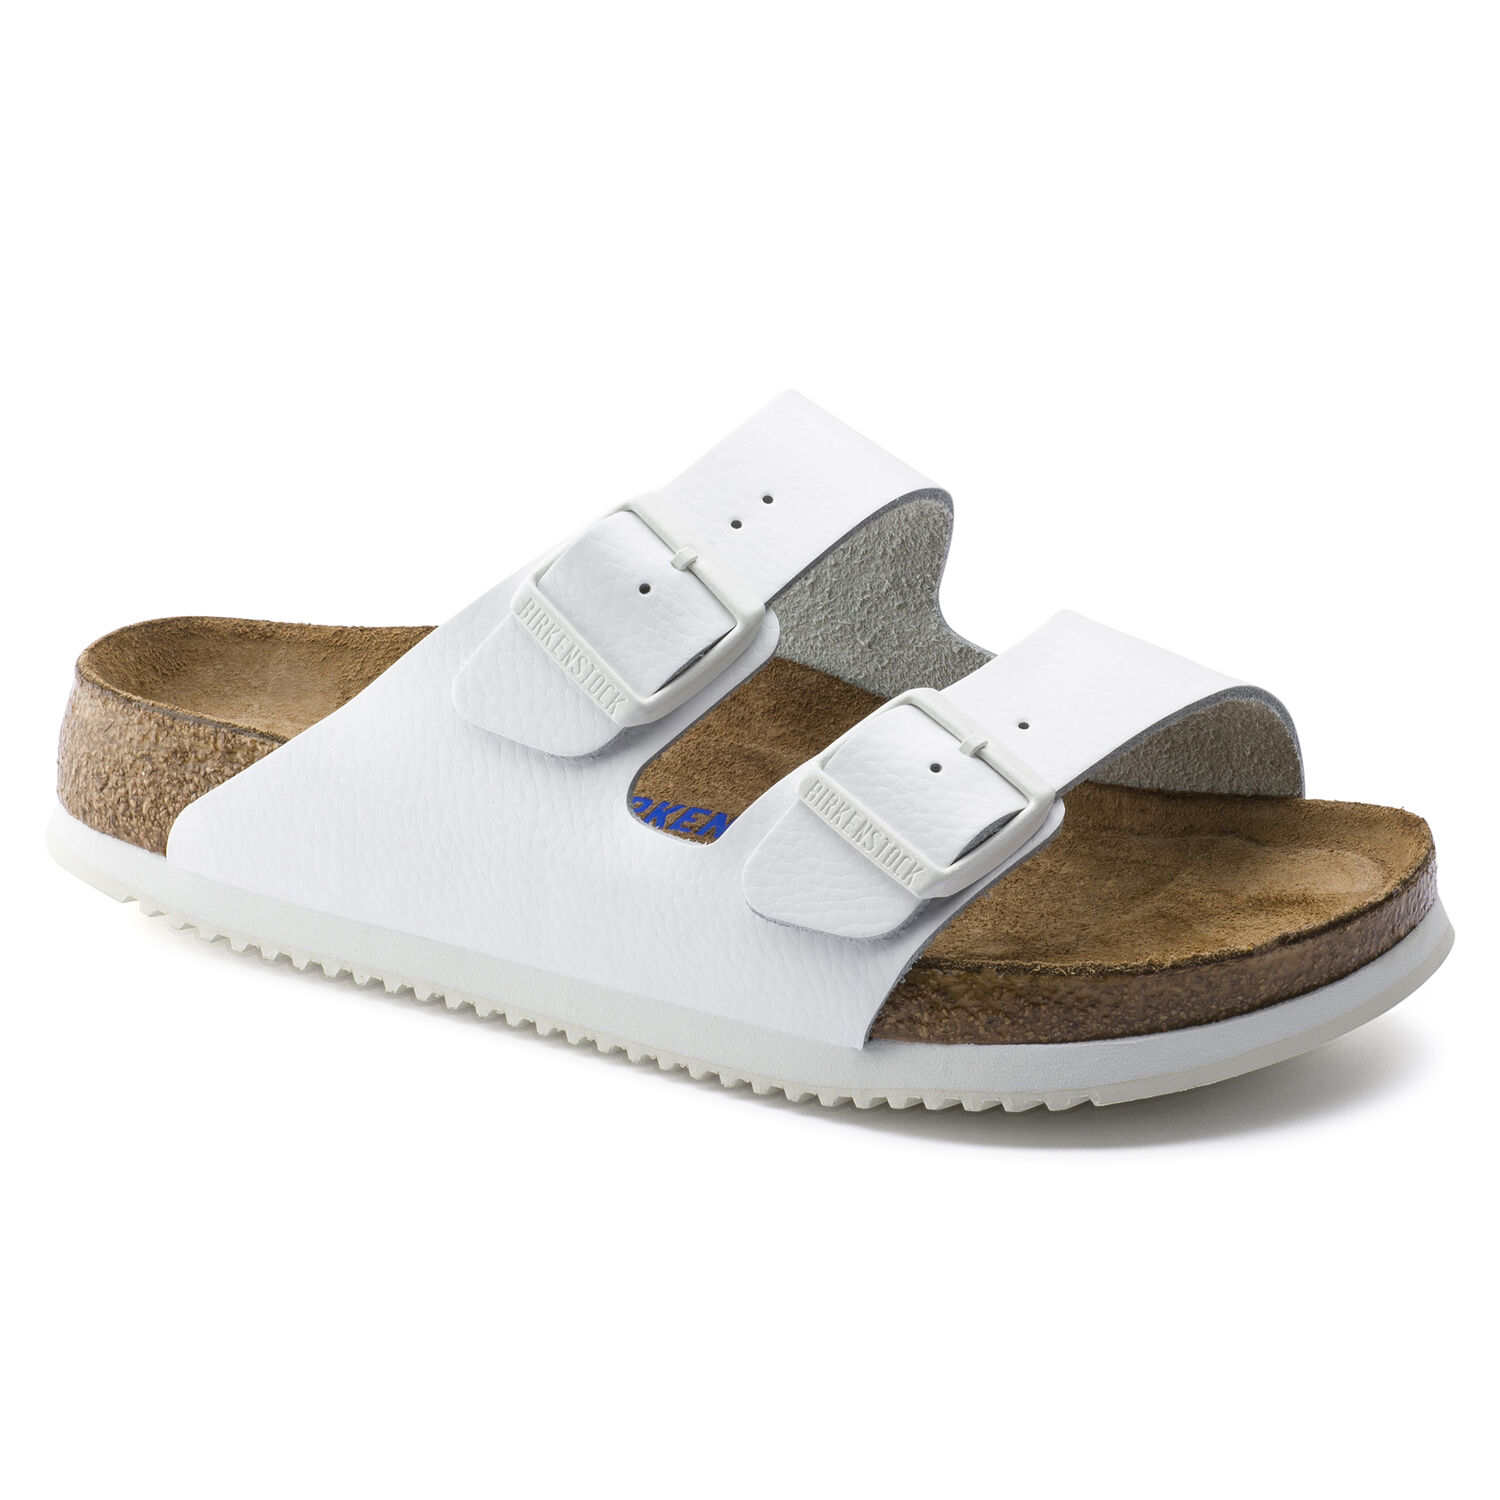 95d07b543 Arizona Natural Leather Soft Footbed White